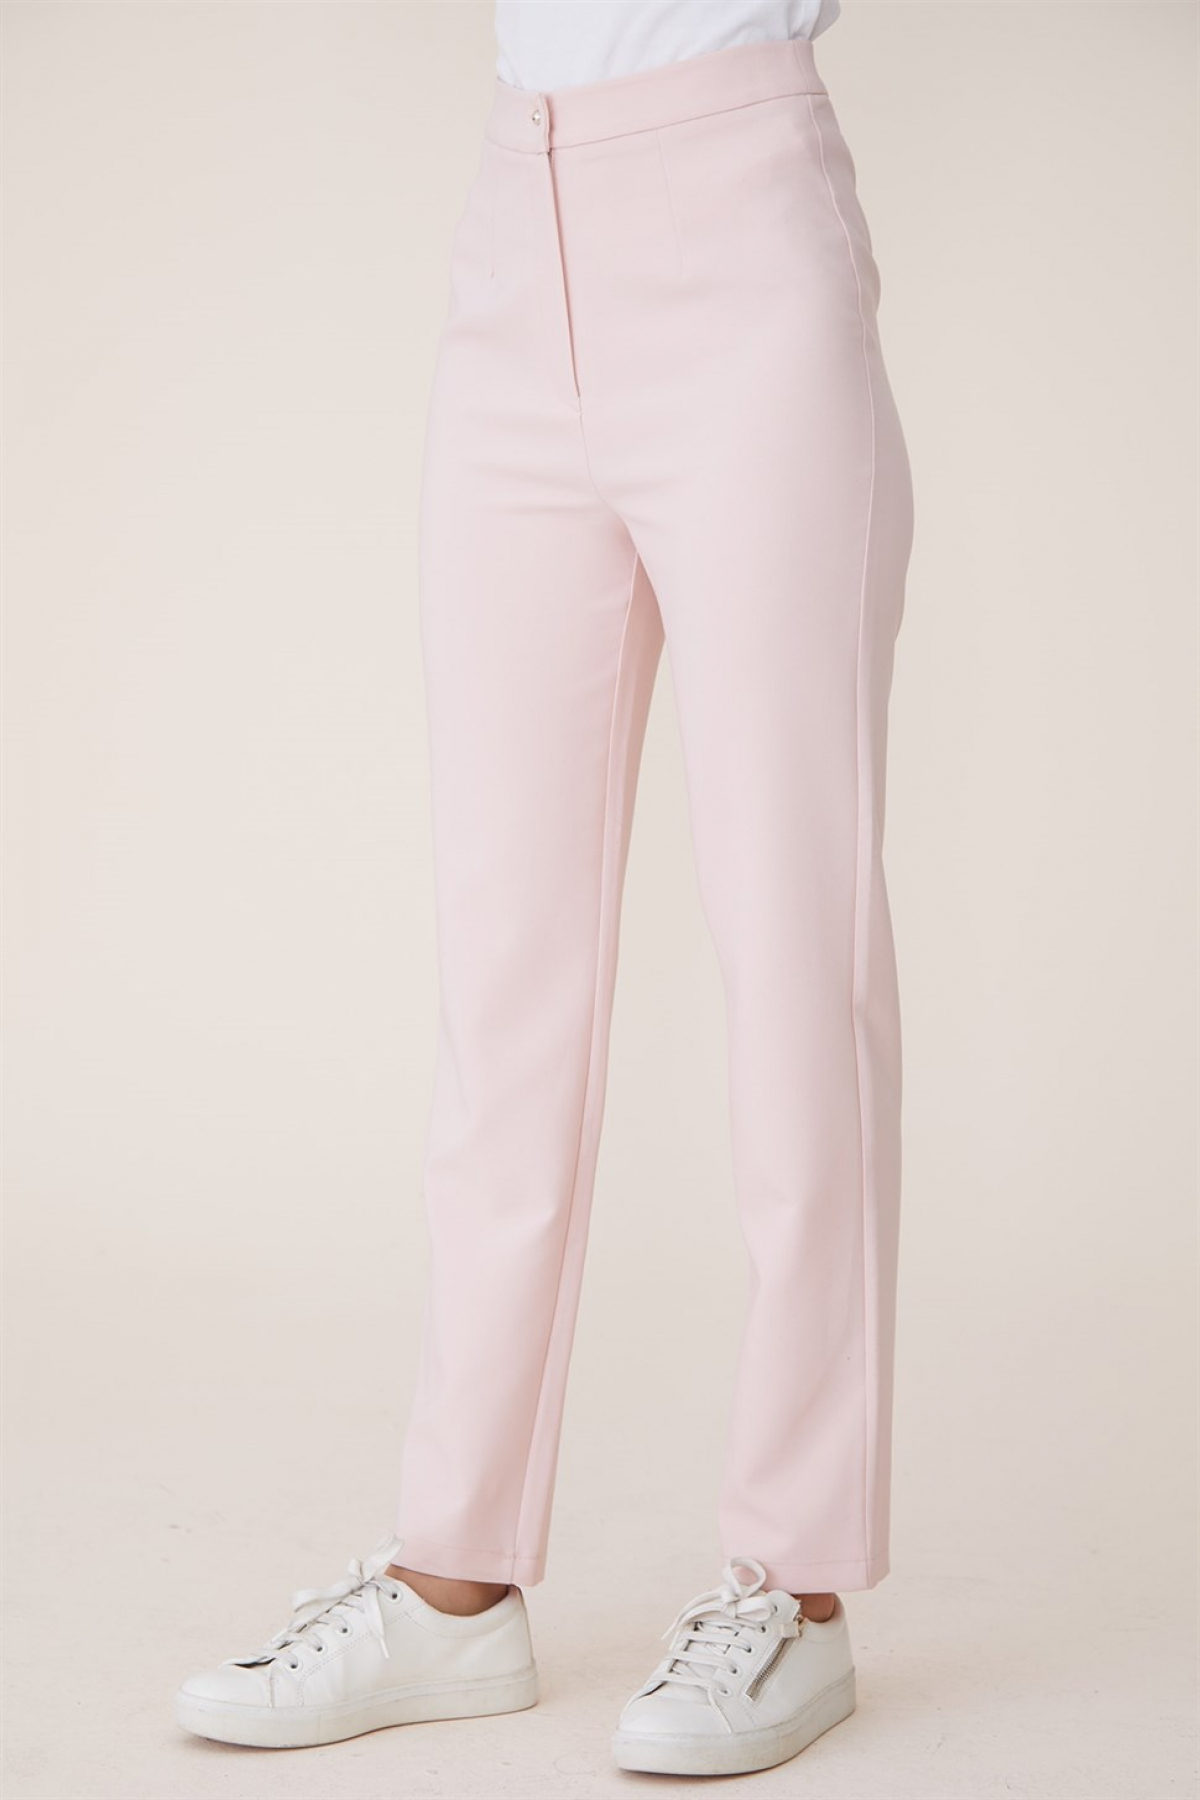 Armine Women's Short Trousers - 9Y8026 Pink